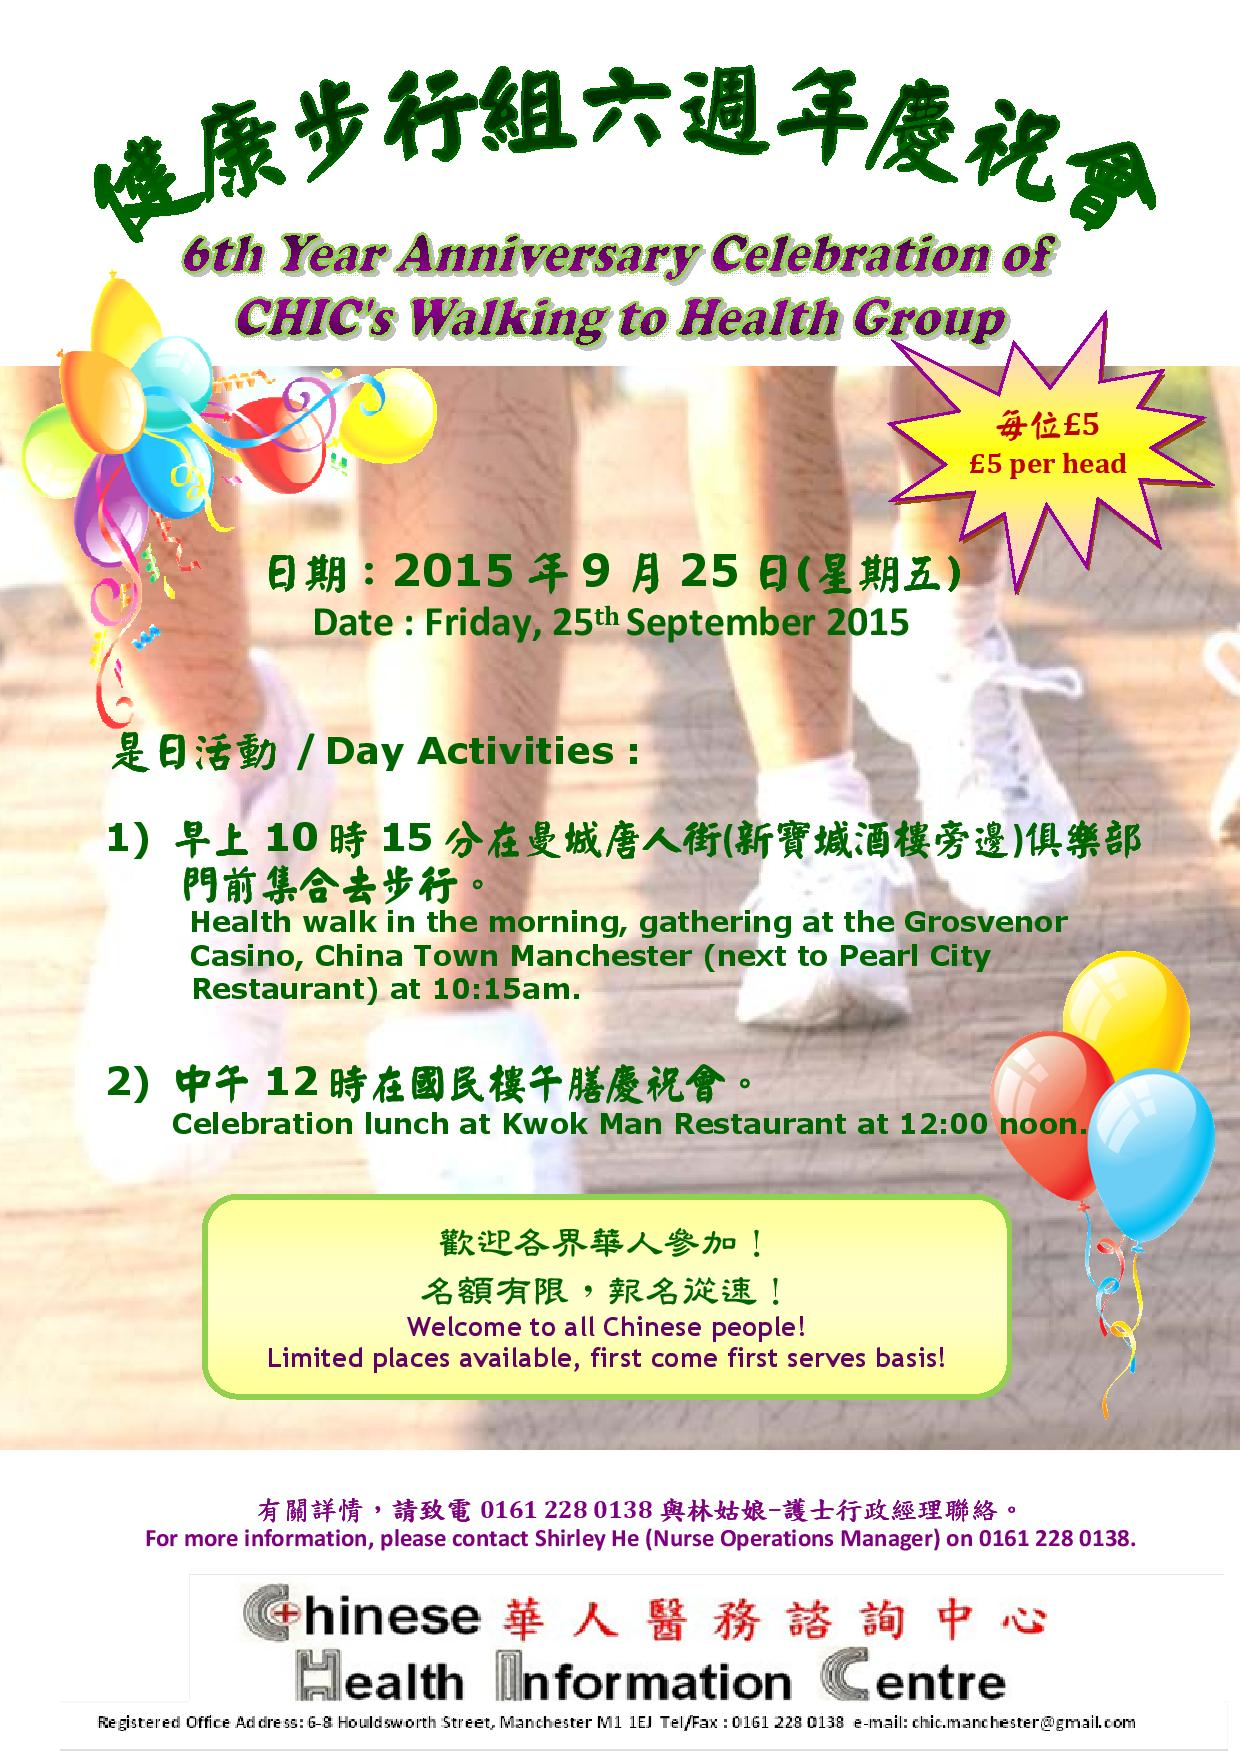 CHIC's Walking to Health 6th Year Anniversary